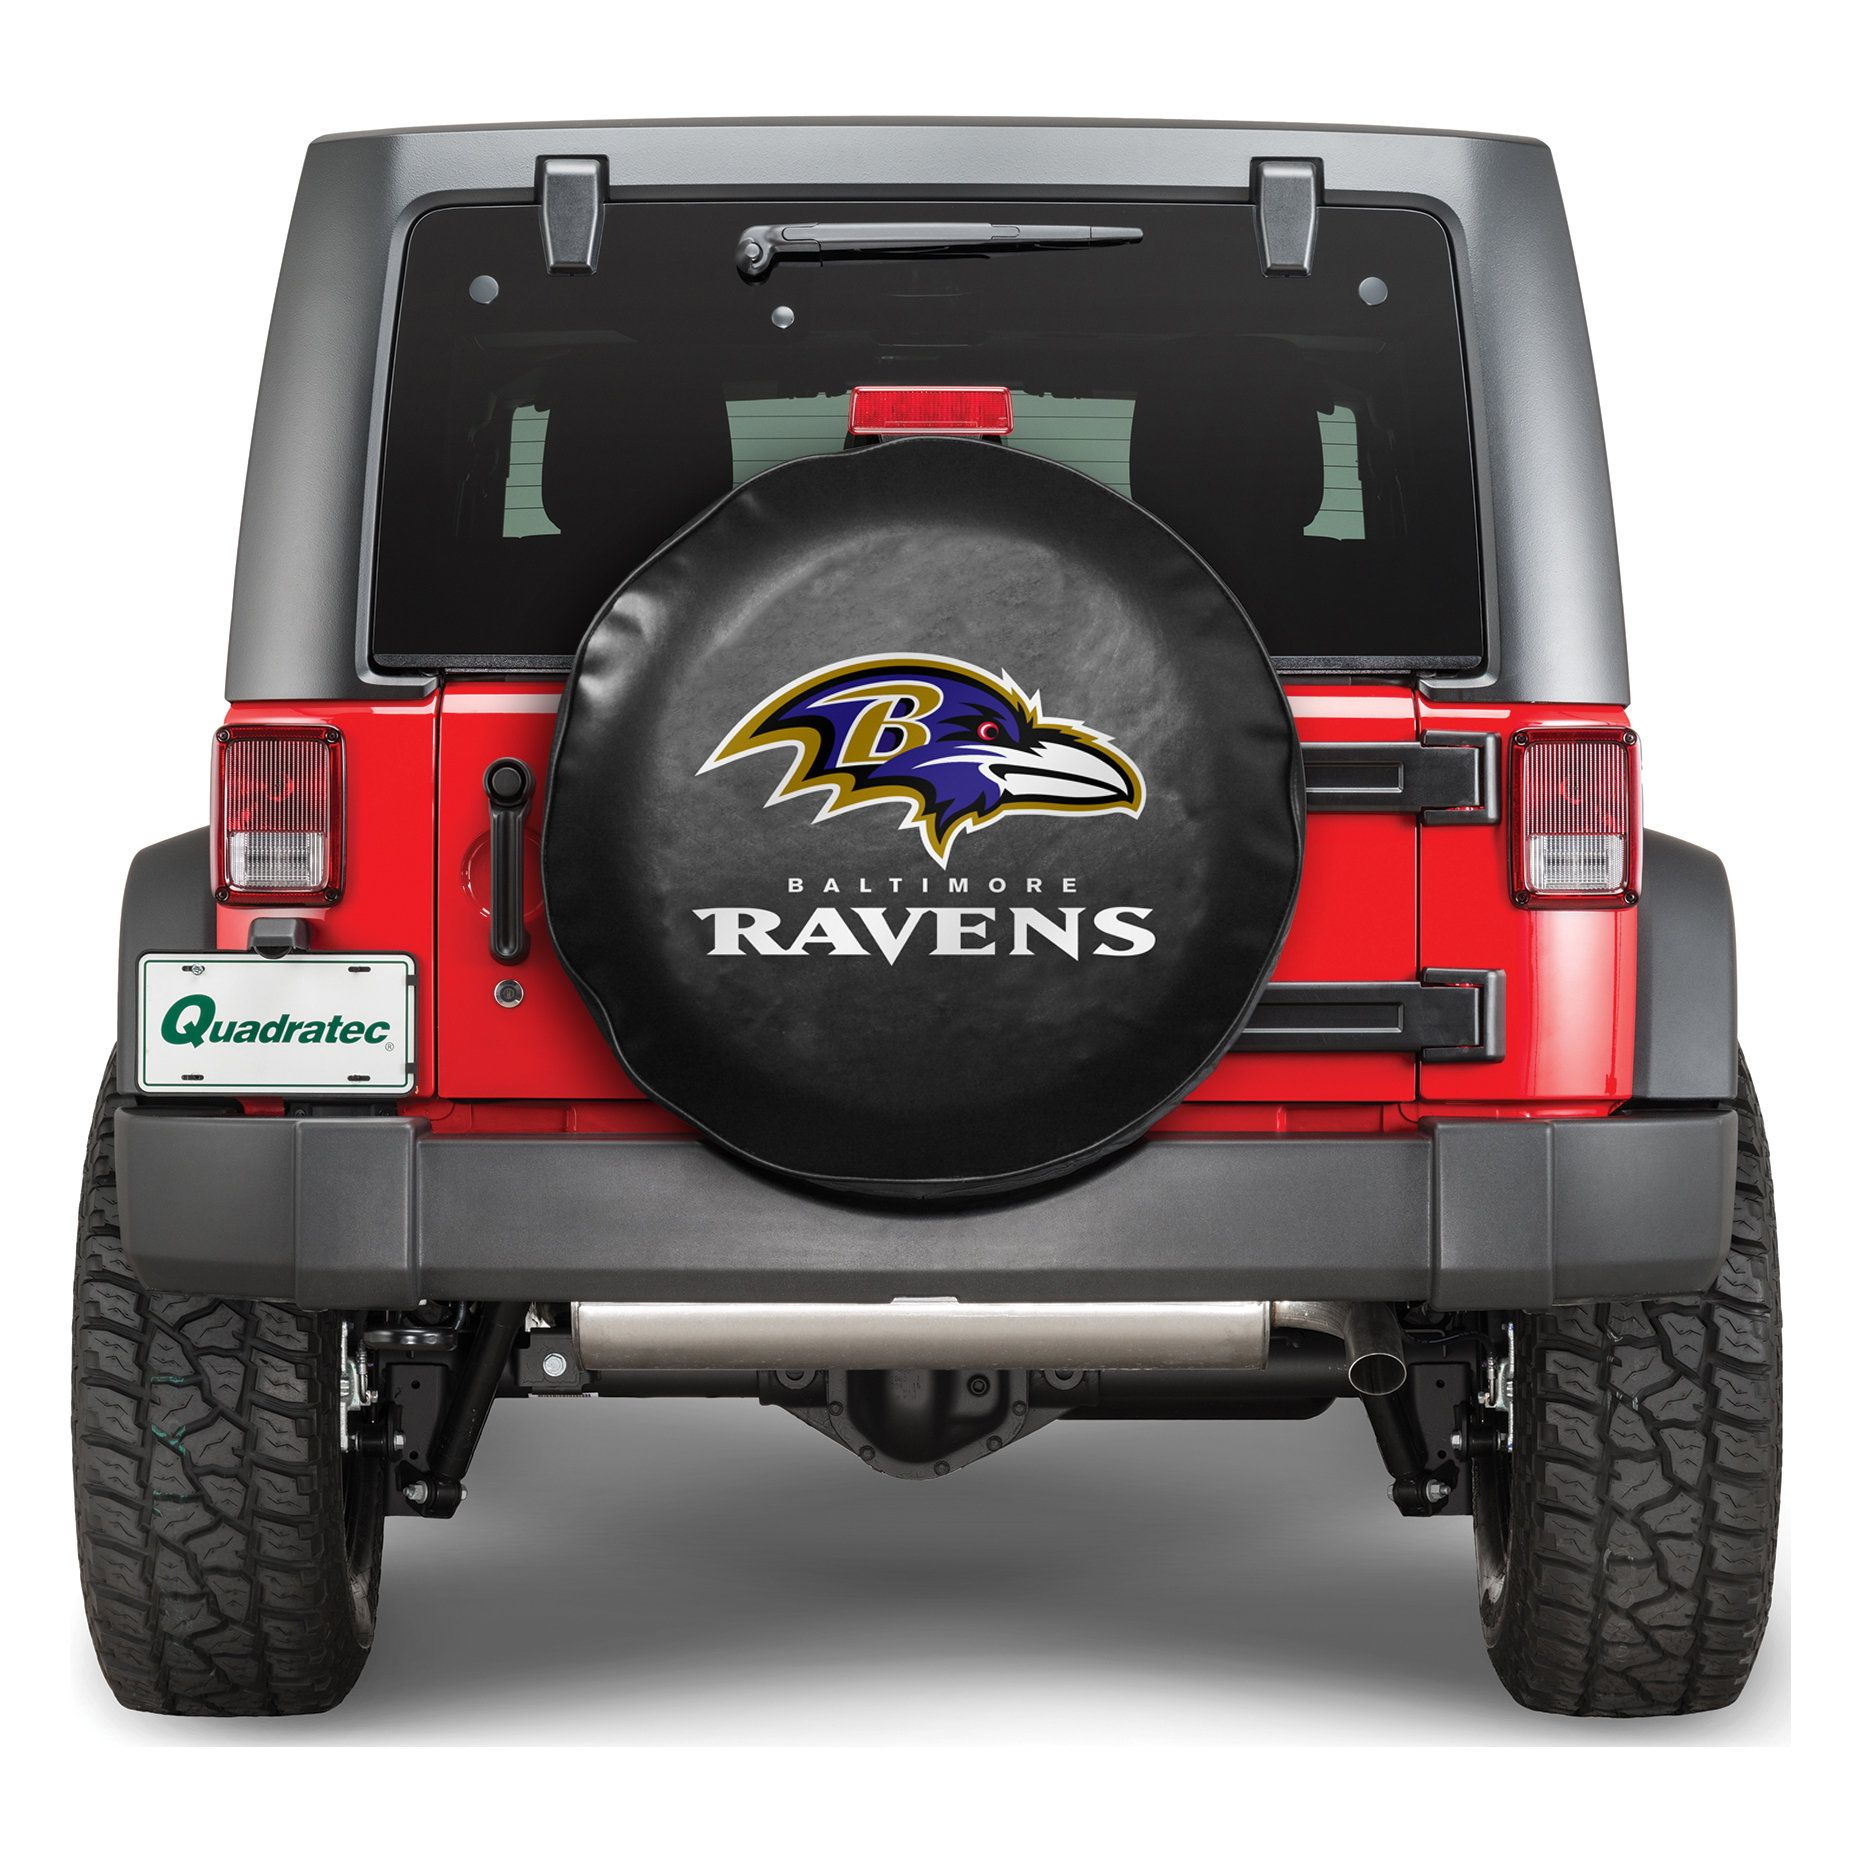 Nfl Baltimore Ravens Official Tire Cover 2010 Jeep Wrangler